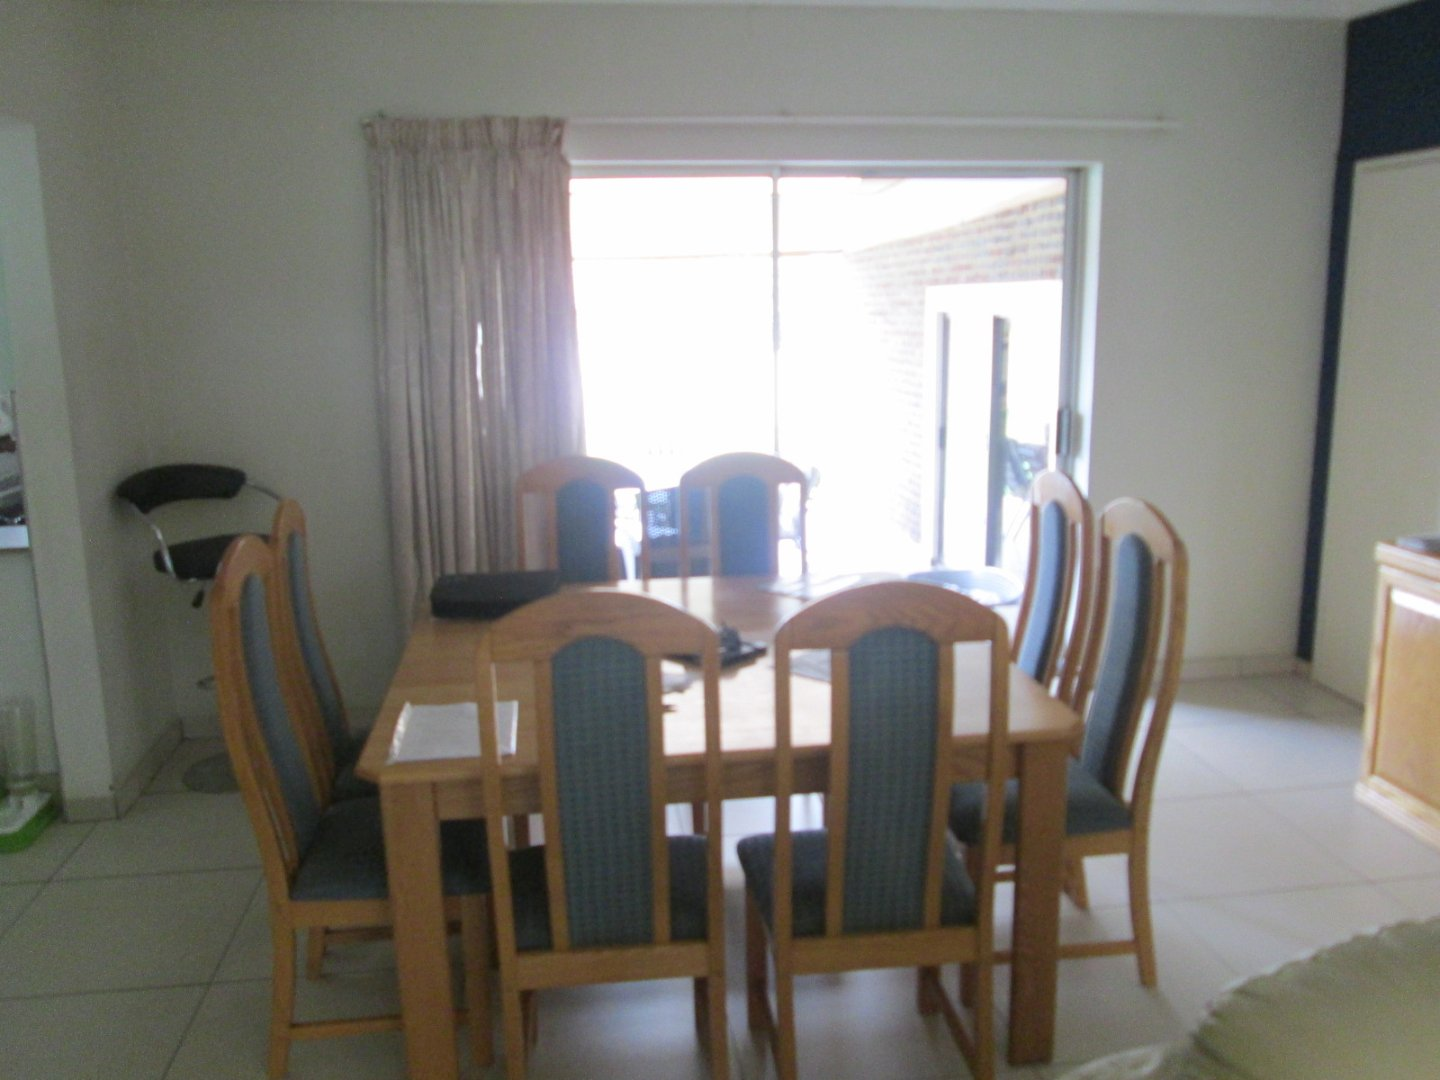 Verwoerdpark property for sale. Ref No: 13585676. Picture no 4